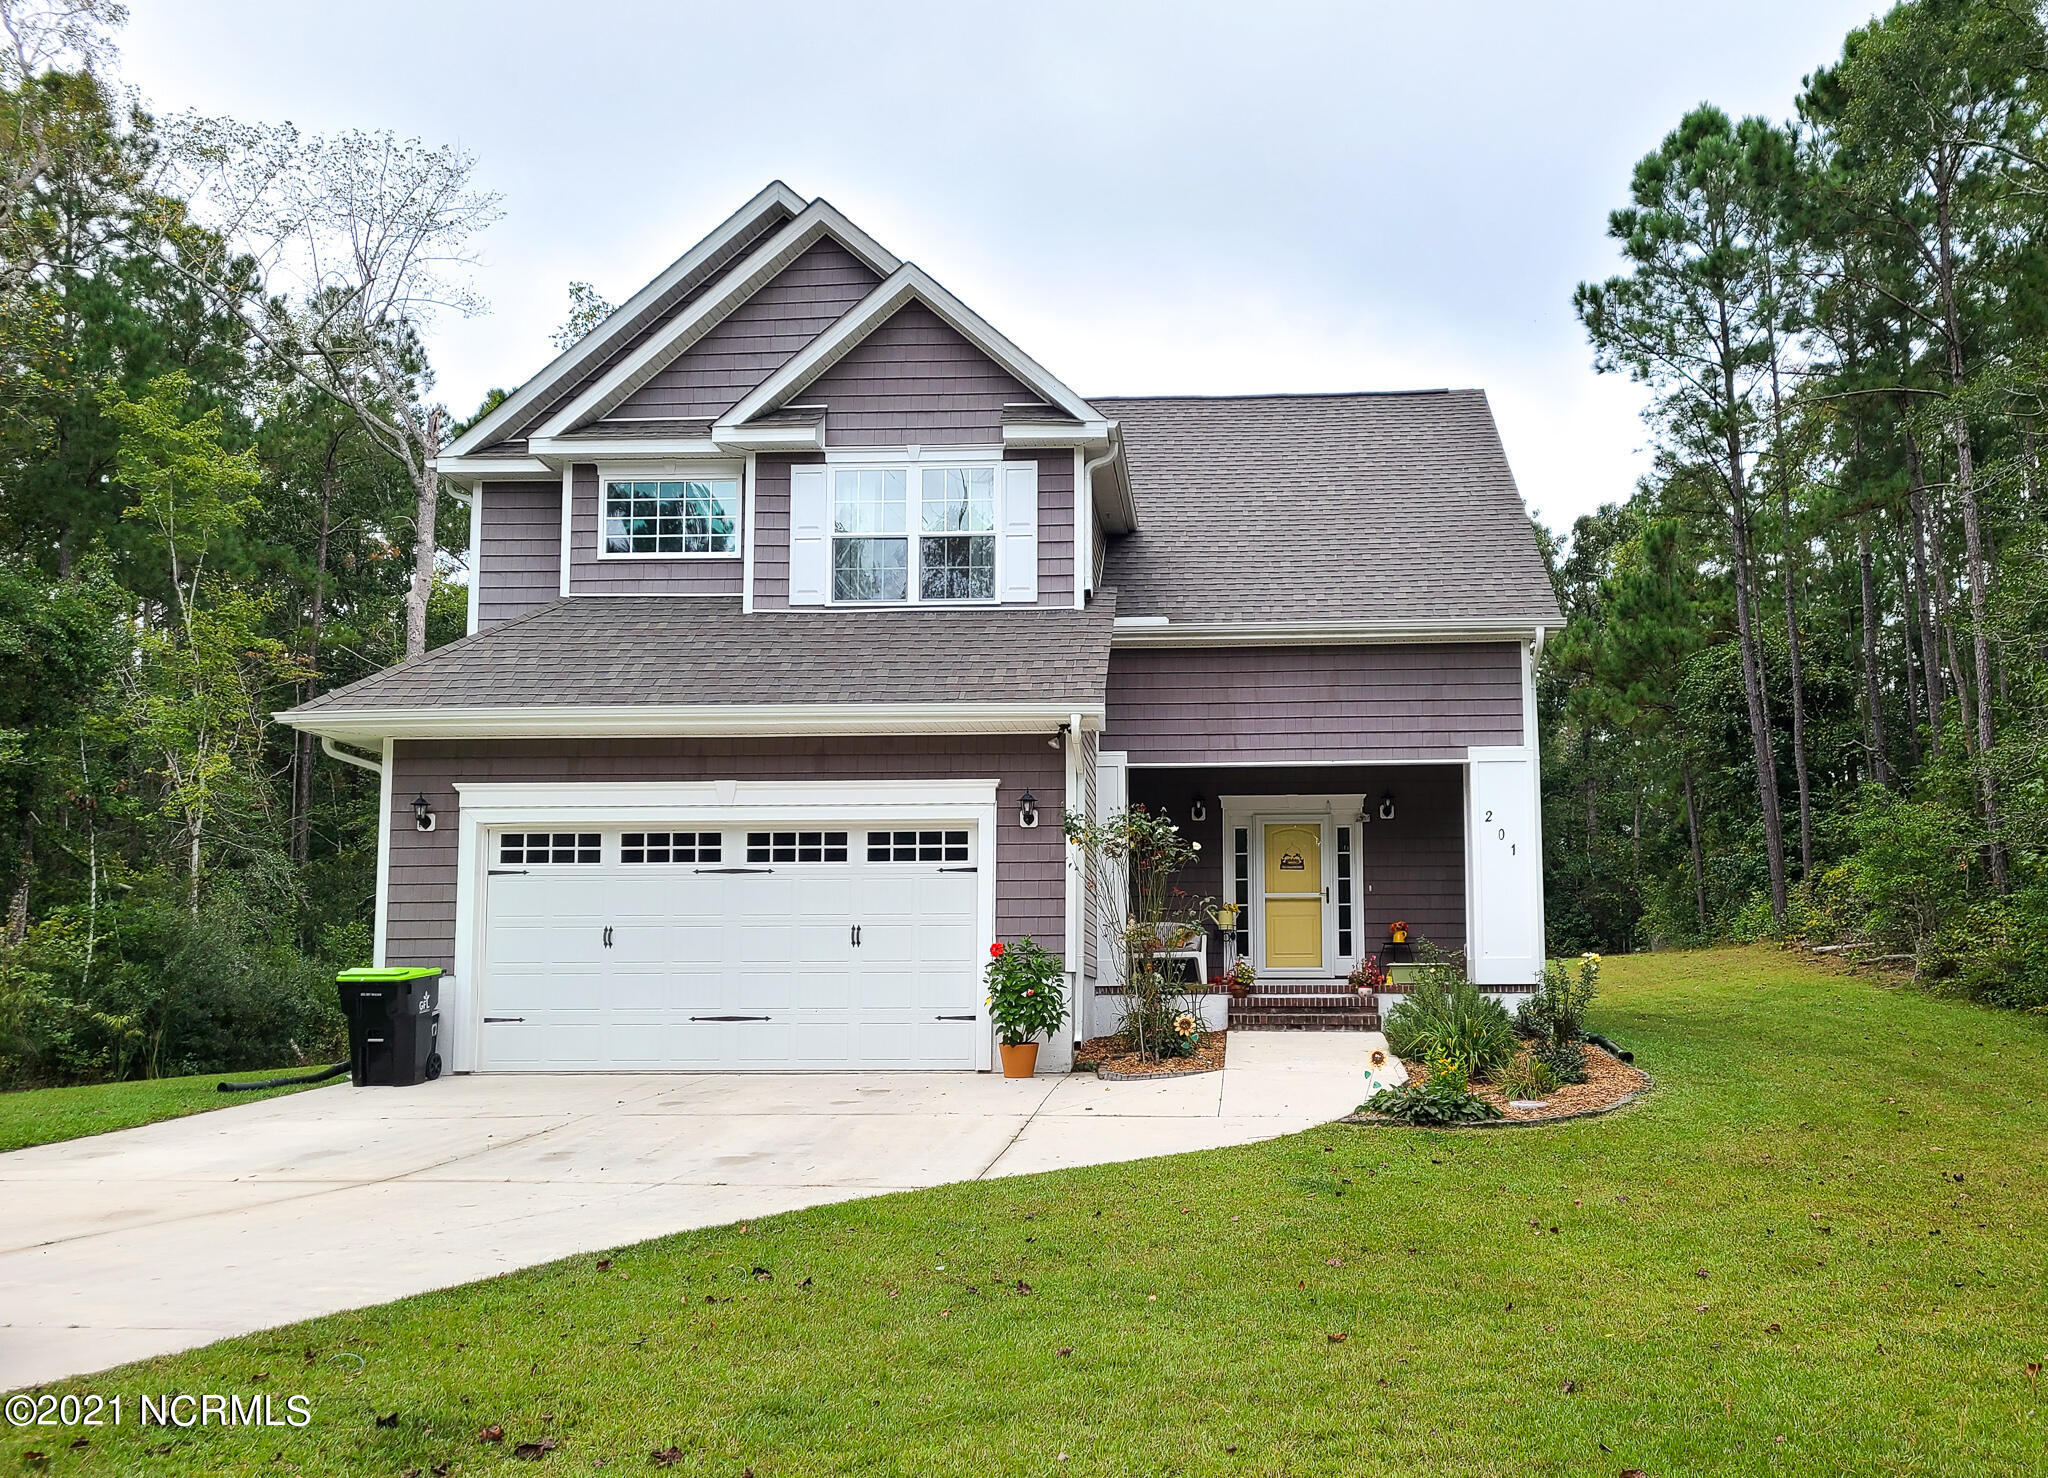 Welcome to White Oak Bluff, a tranquil, waterfront subdivision that includes a boat ramp, day dock, and picnic/swimming area in the Croatan & White Oak School Districts! It's also home to this NEWER GORGEOUS 3 bedroom, 2.5 bath home situated on a private lot surrounded by trees. Built in 2016 this home boosts an open floor plan downstairs with a 2nd living area or bonus room upstairs. The kitchen has stainless steel appliances, granite counter tops and lots of natural light. Enjoy your morning coffee on the screened back porch while listening to the birds. You CANNOT let this one get away!